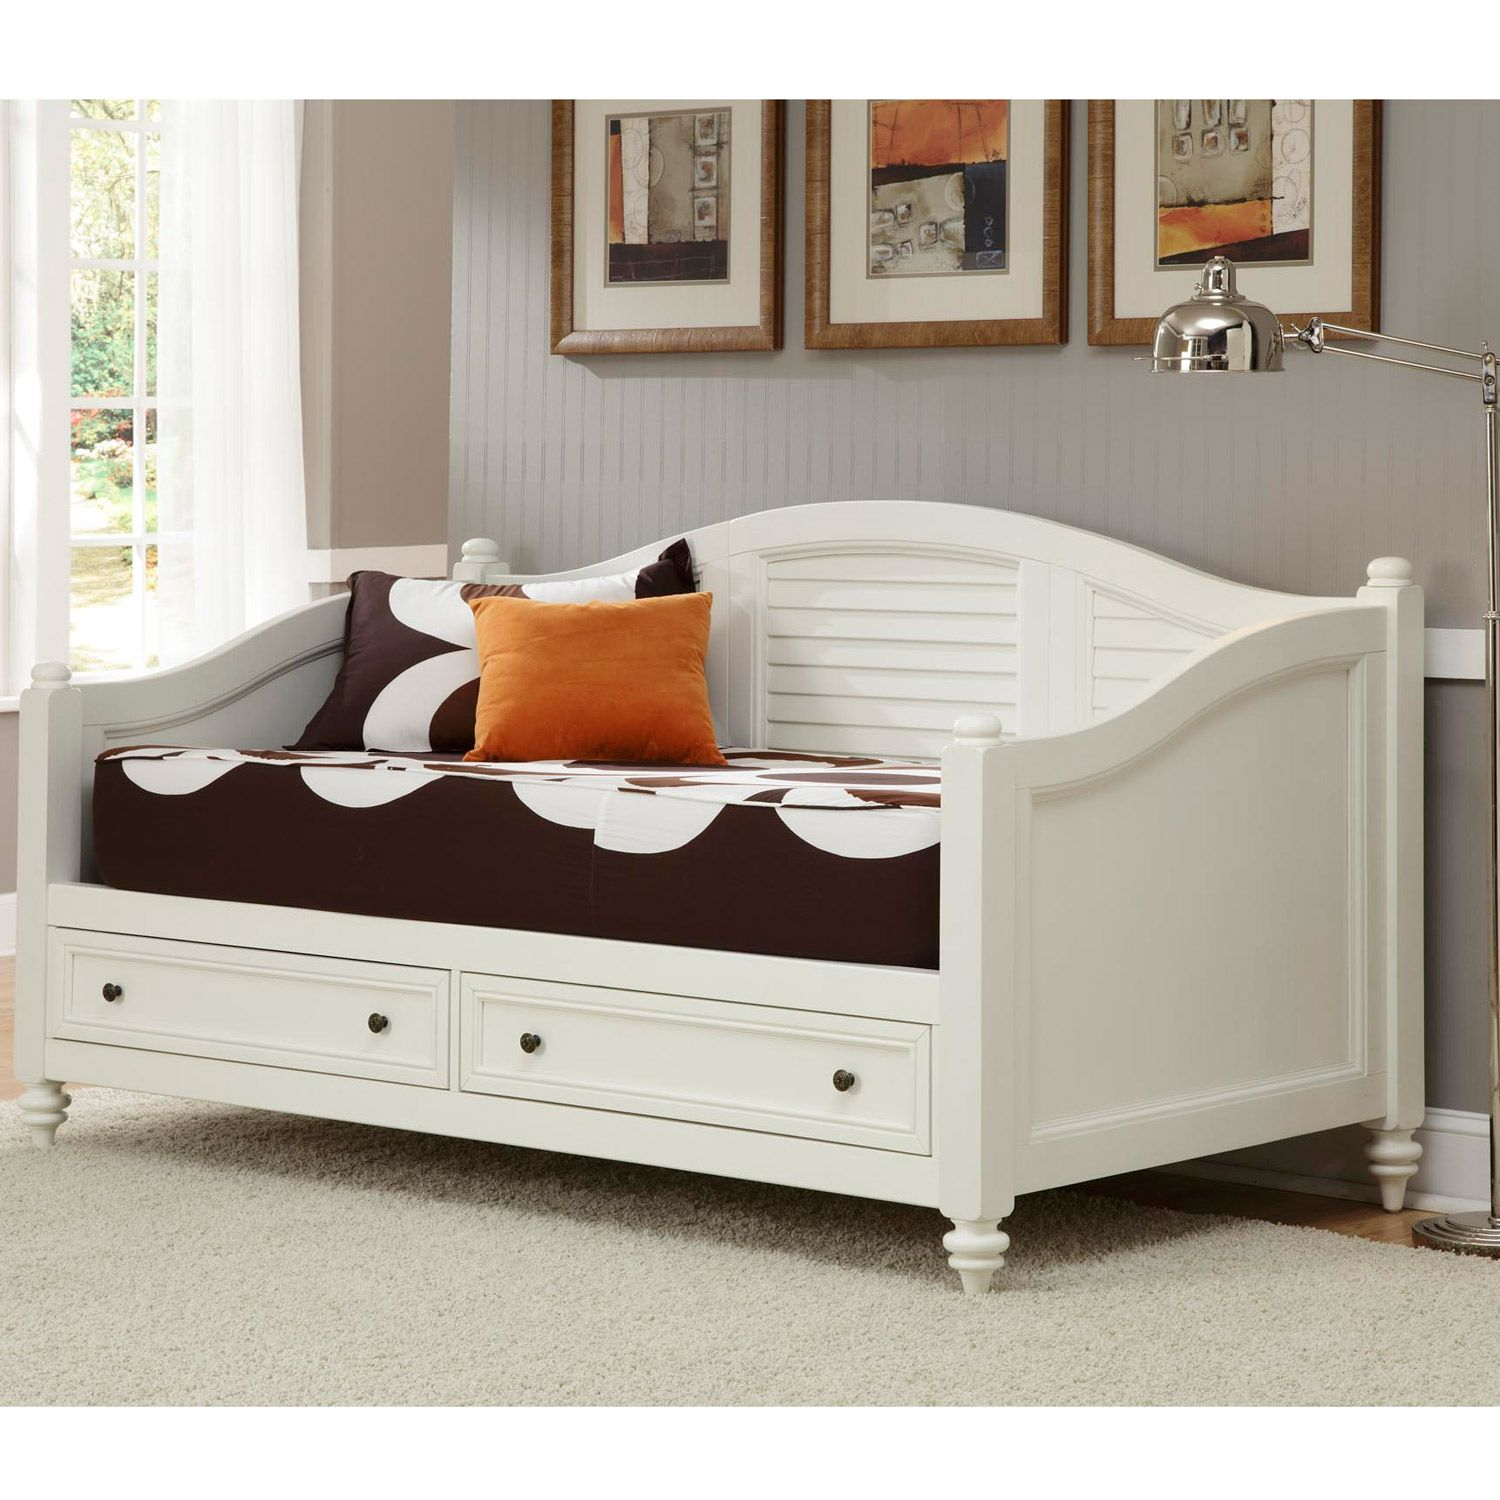 Amazing Twin Daybed Full Size With Drawer Storage